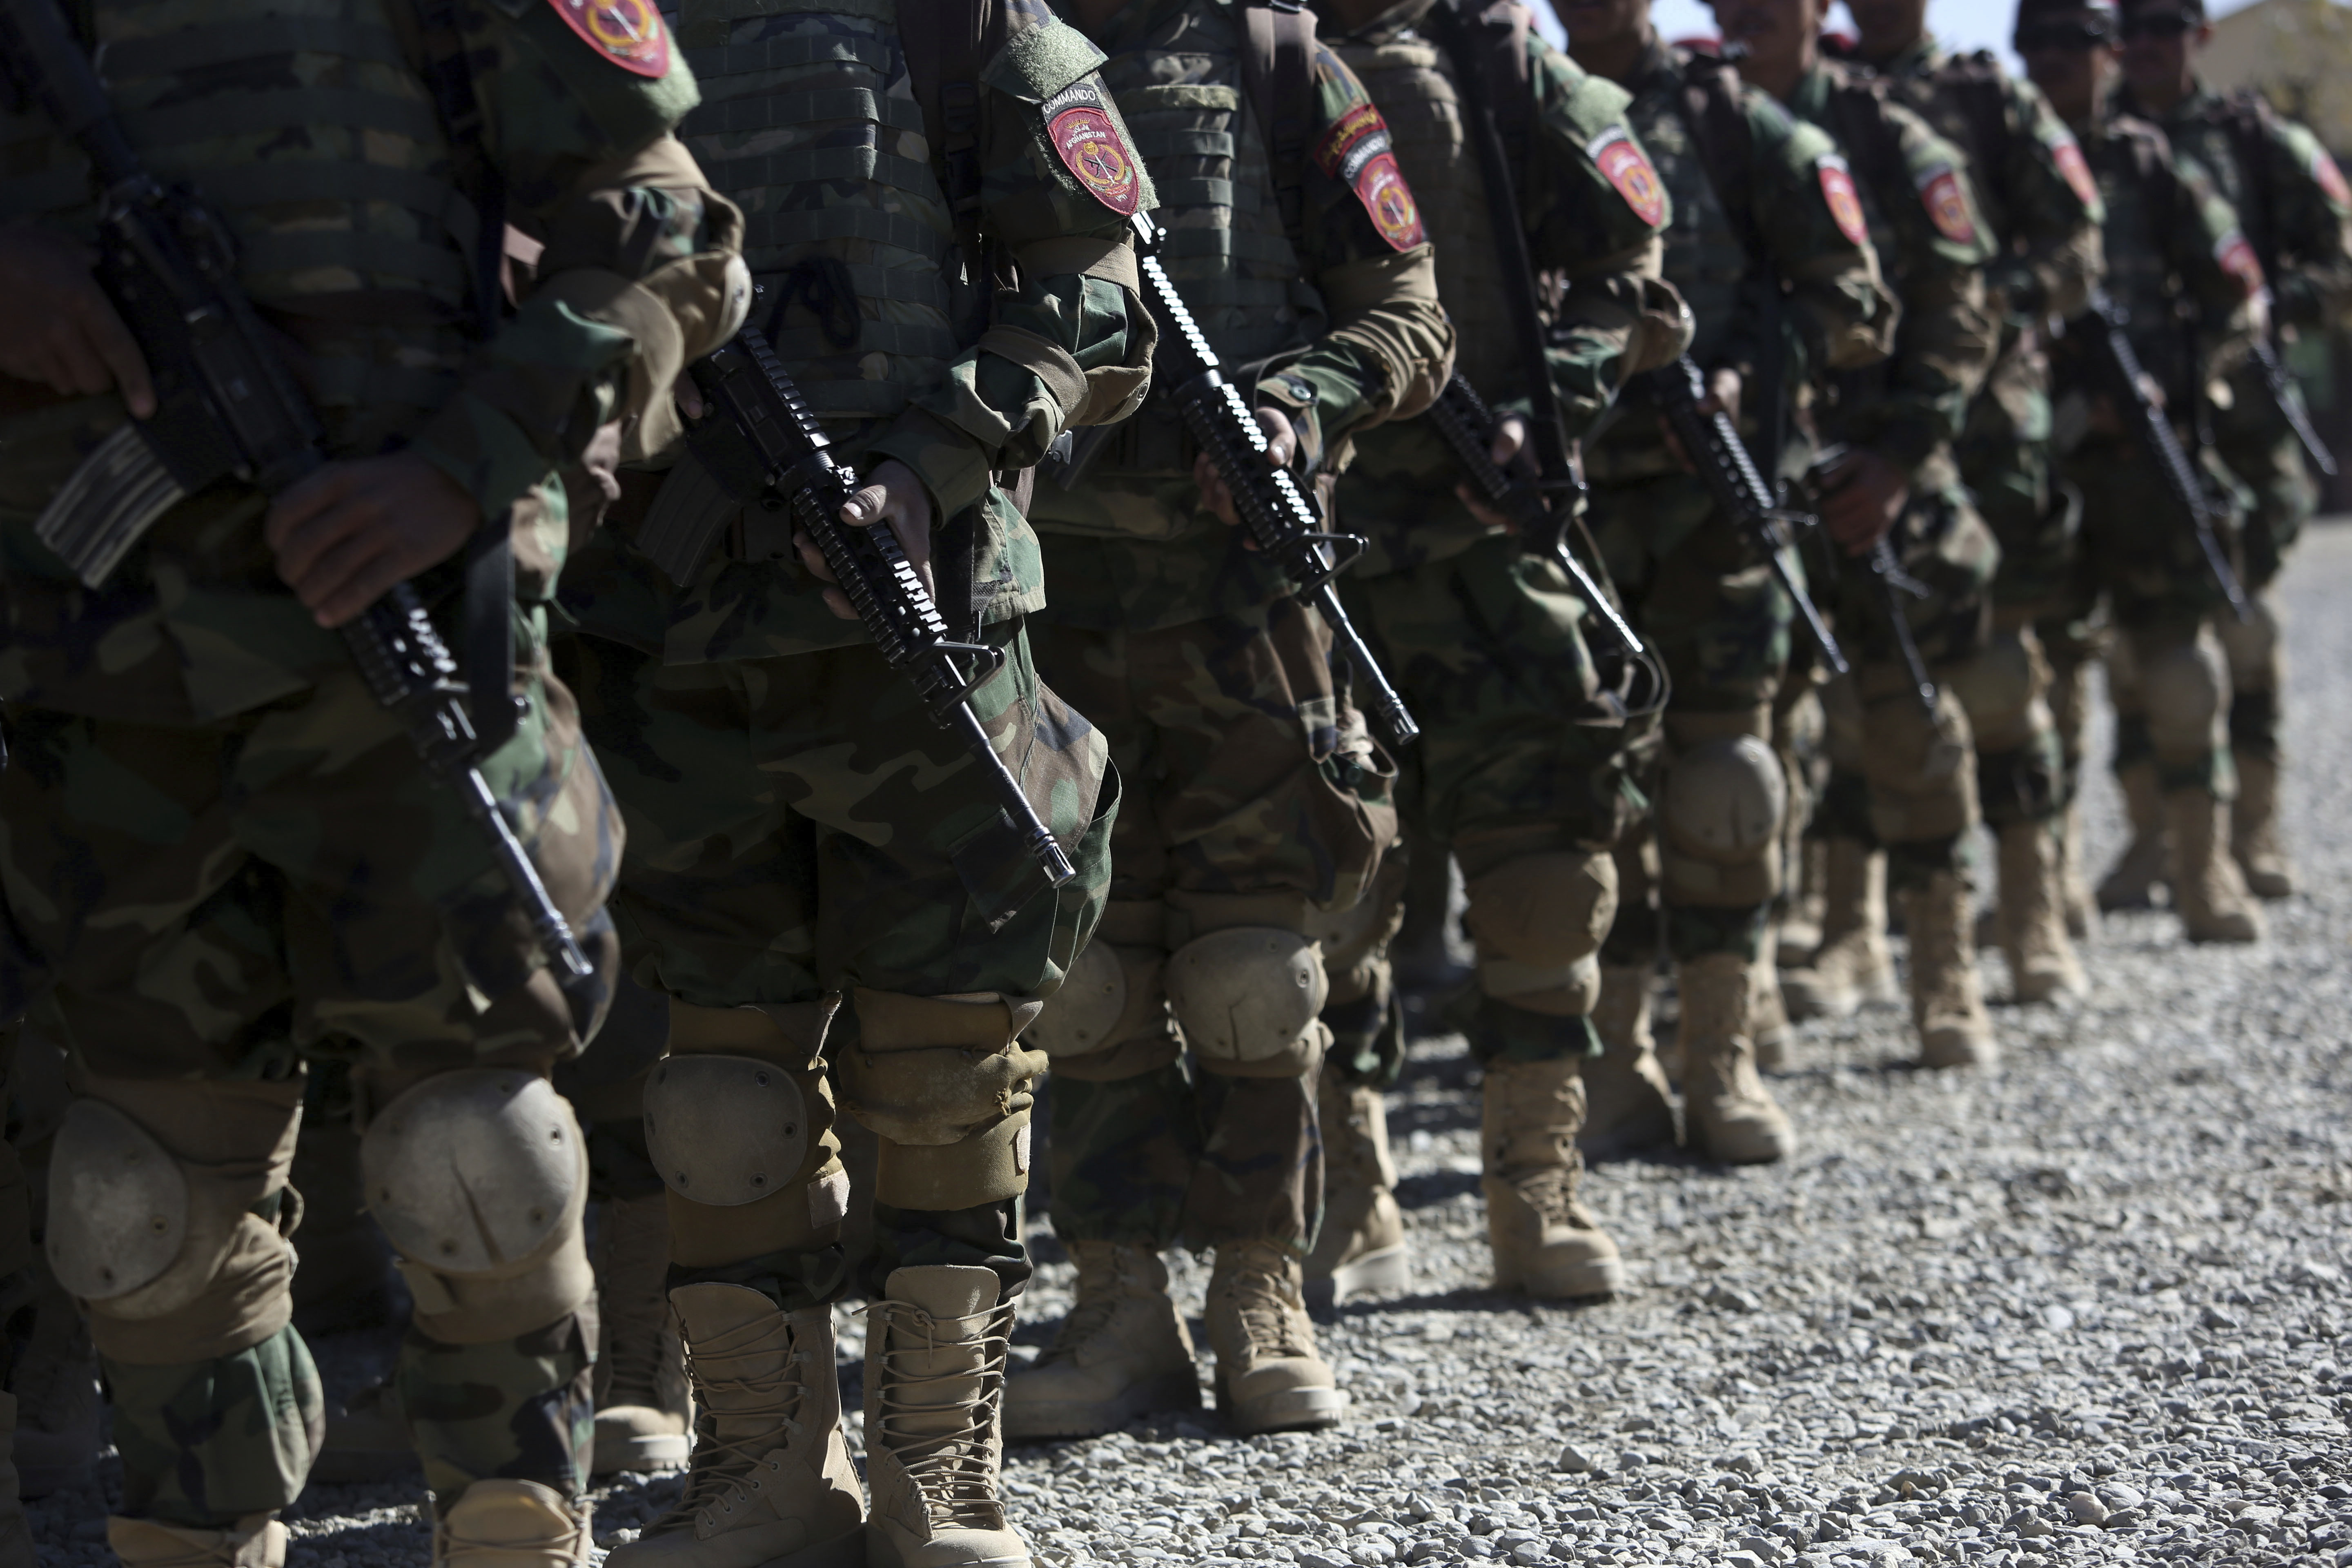 New members of the Afghan Special forces attend their graduation ceremony at the Afghan Corp, on the outskirts of Kabul, Afghanistan, Oct. 25, 2017.